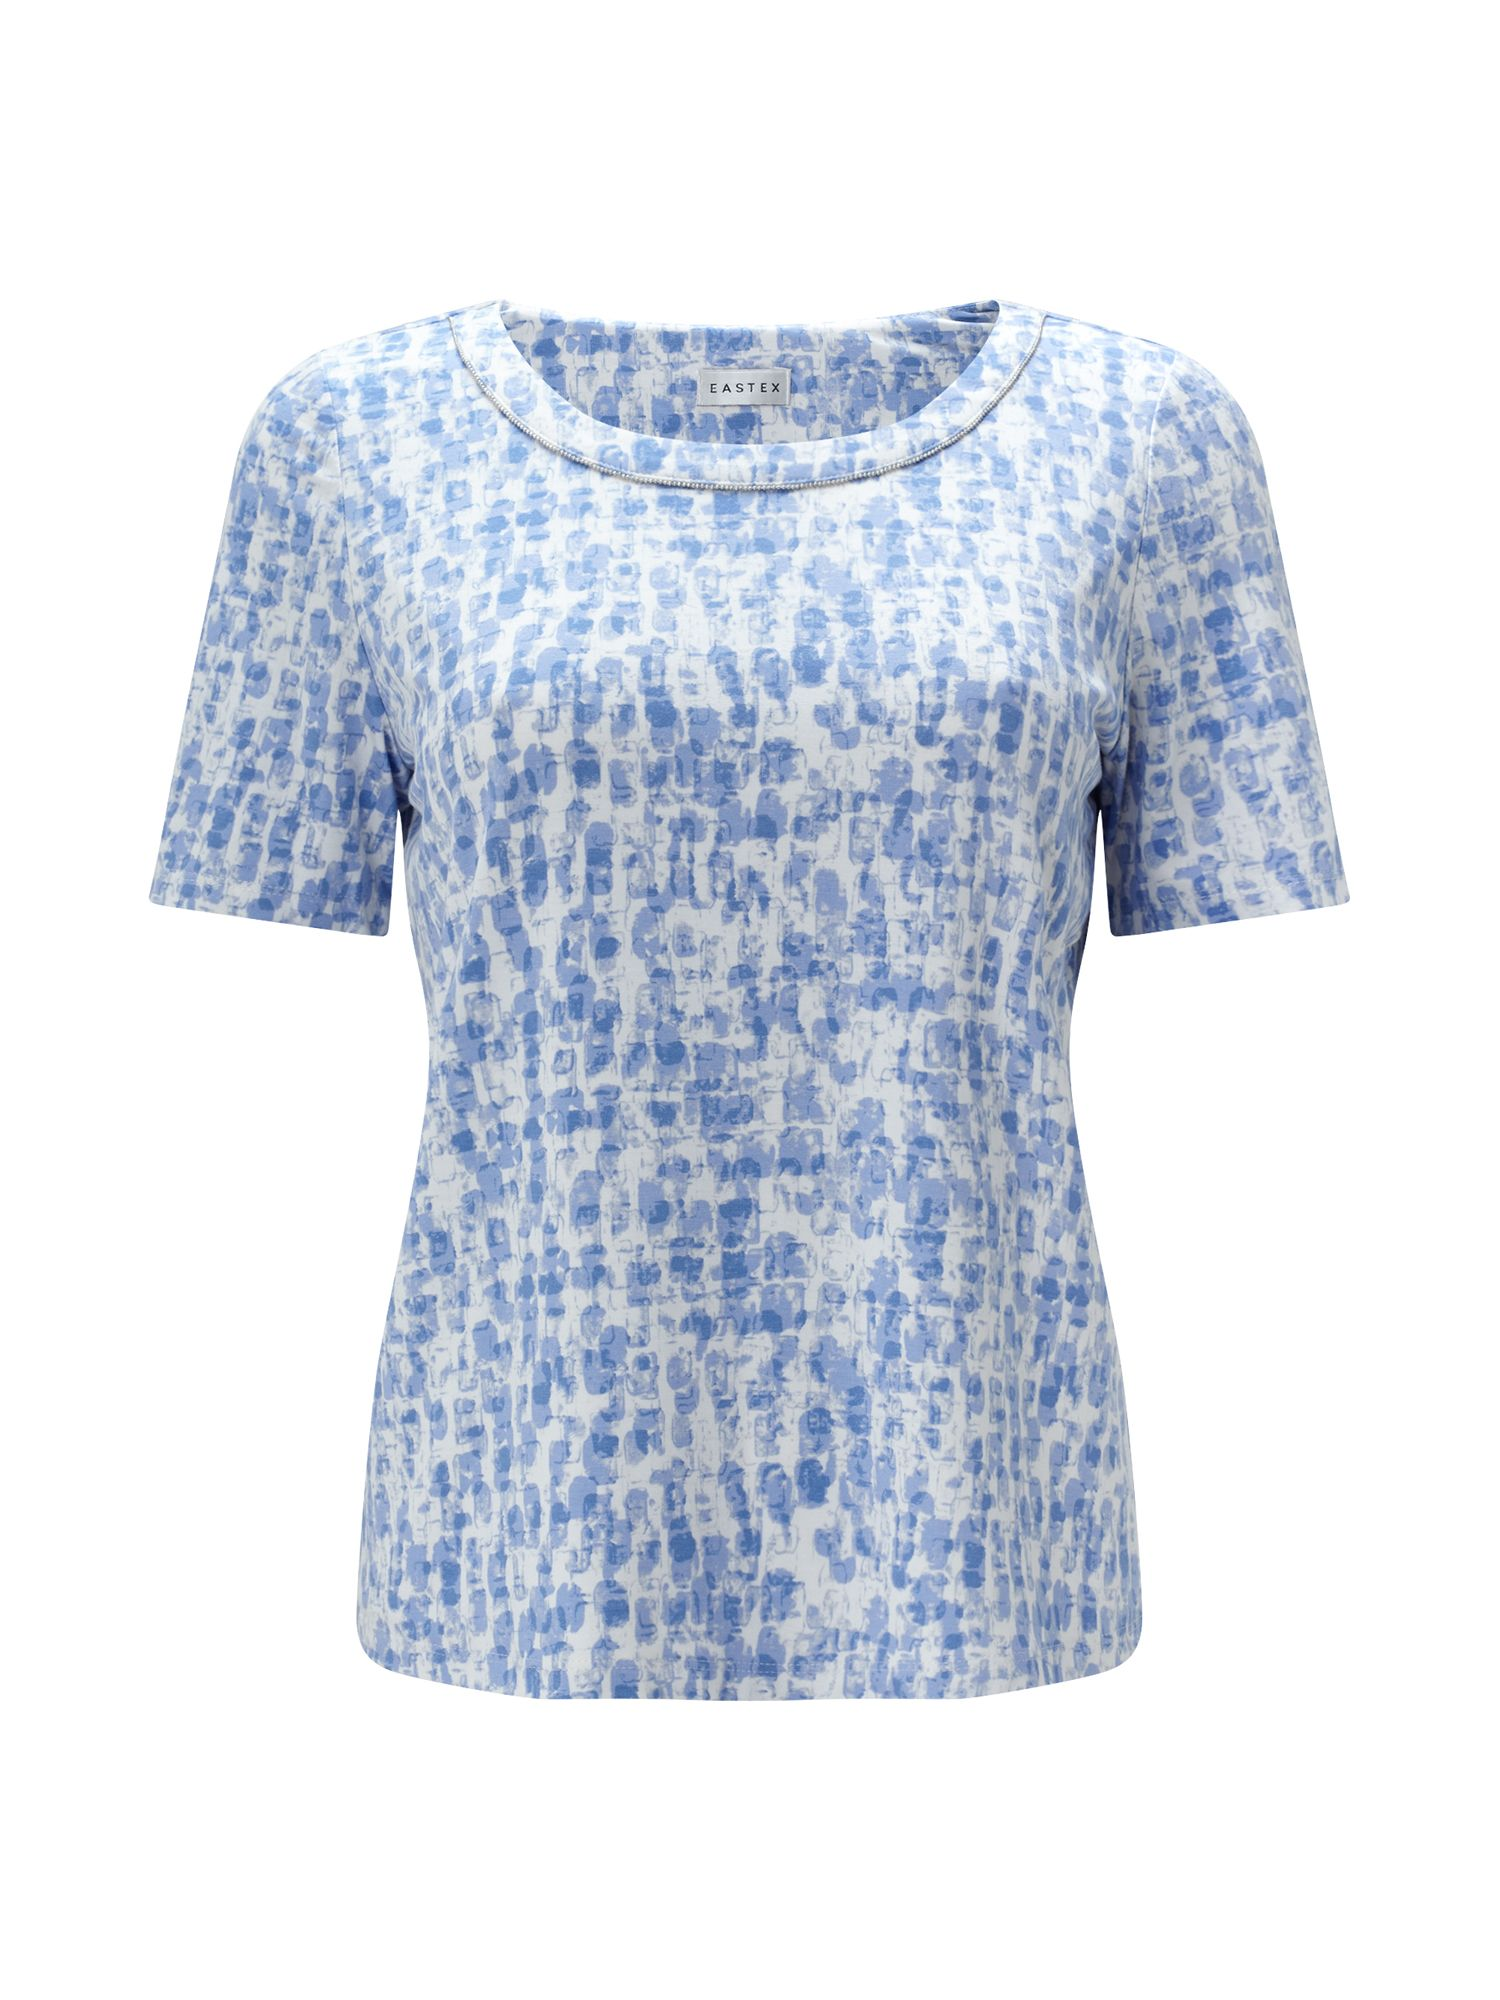 Eastex Stamp Print Jersey Top, Blue Multi